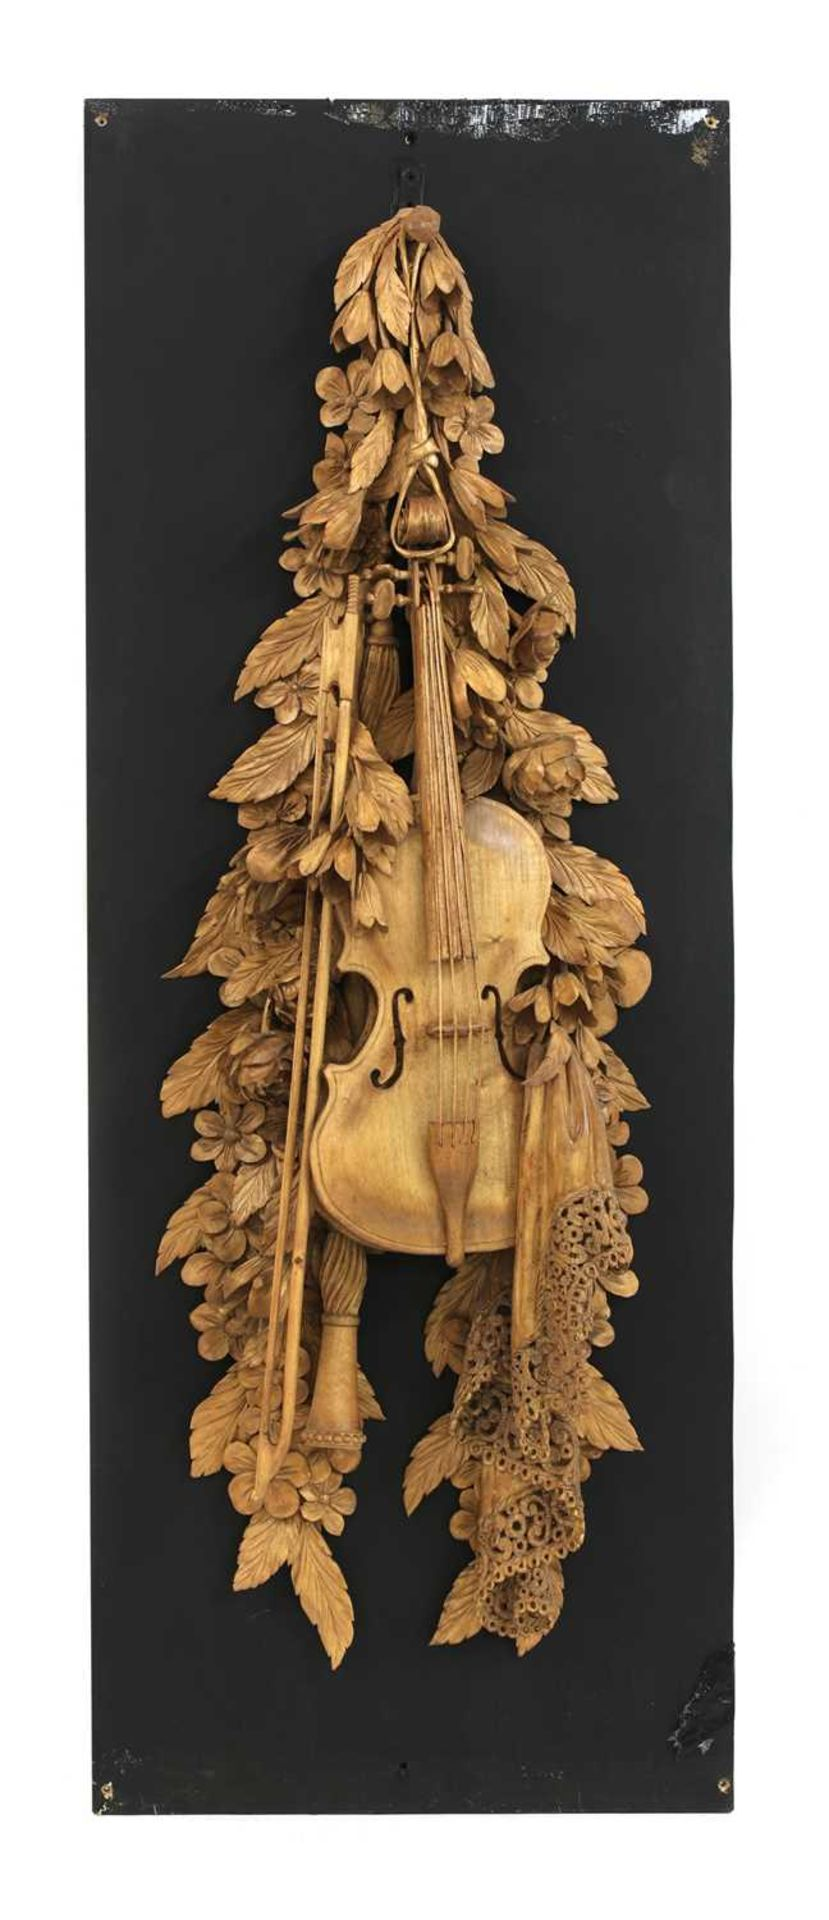 A carved wall hanging in the style of Grinling Gibbons, - Image 2 of 4